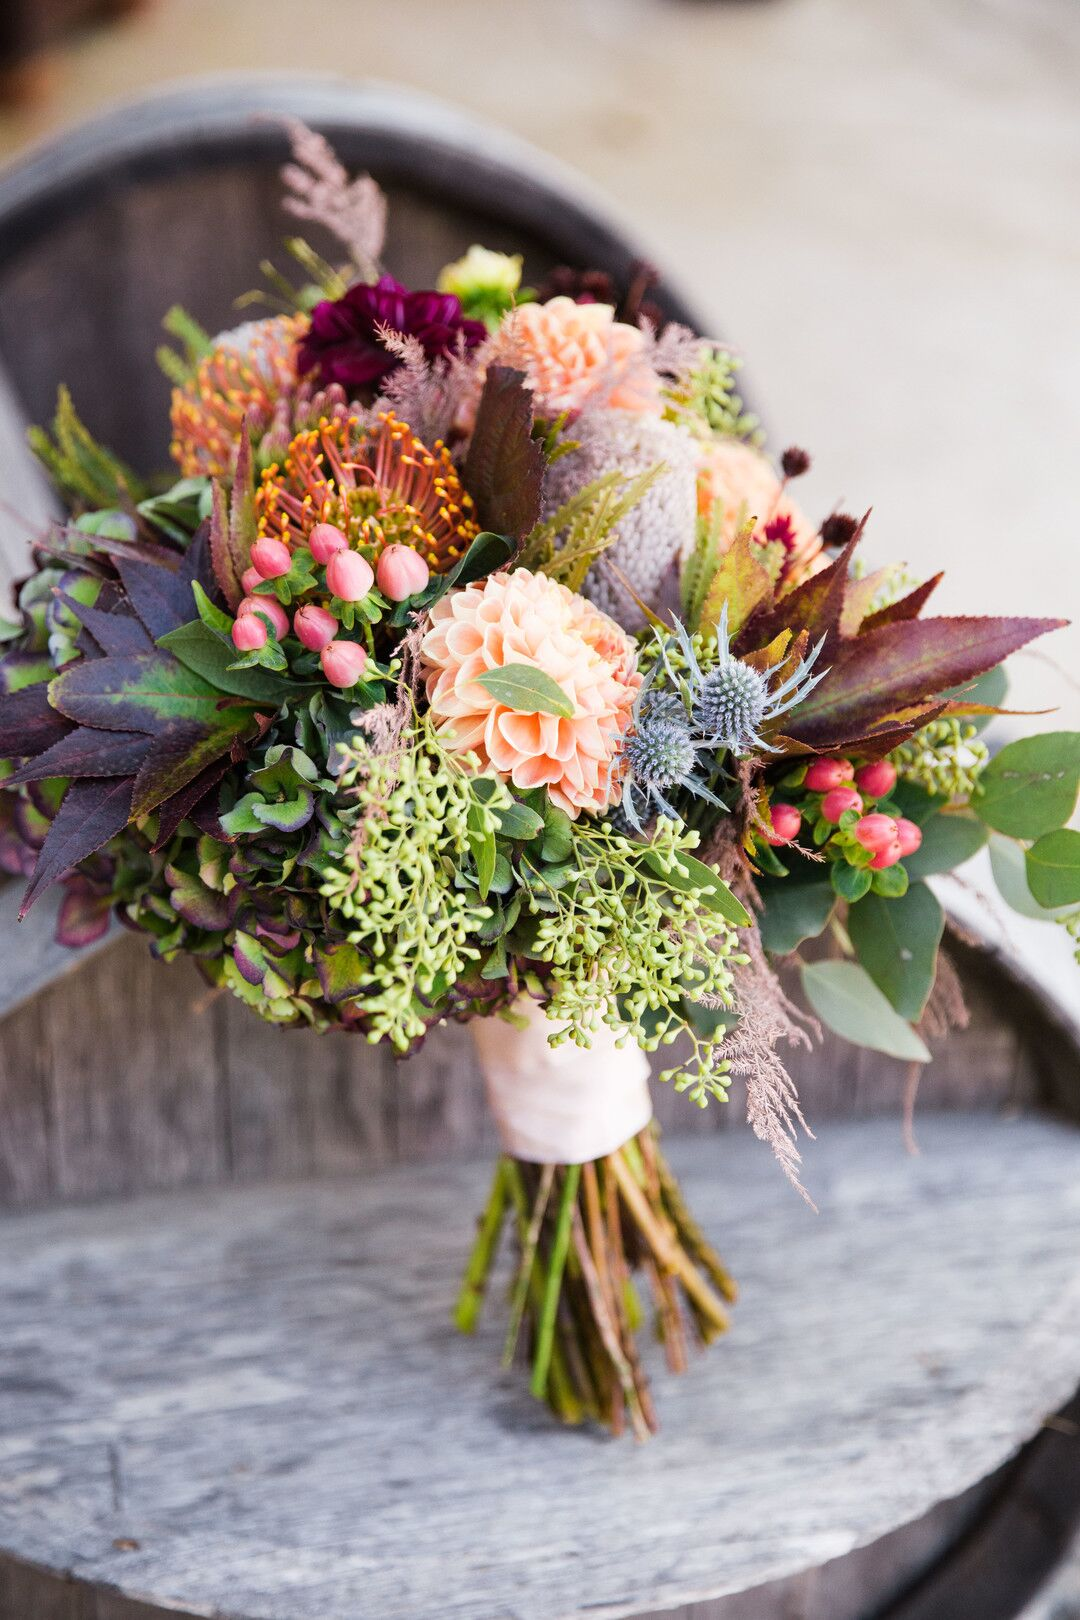 www.santabarbarawedding.com | Venue: Firestone Vineyard | Photographer: Just Kiss Collective | Bridal Bouquet